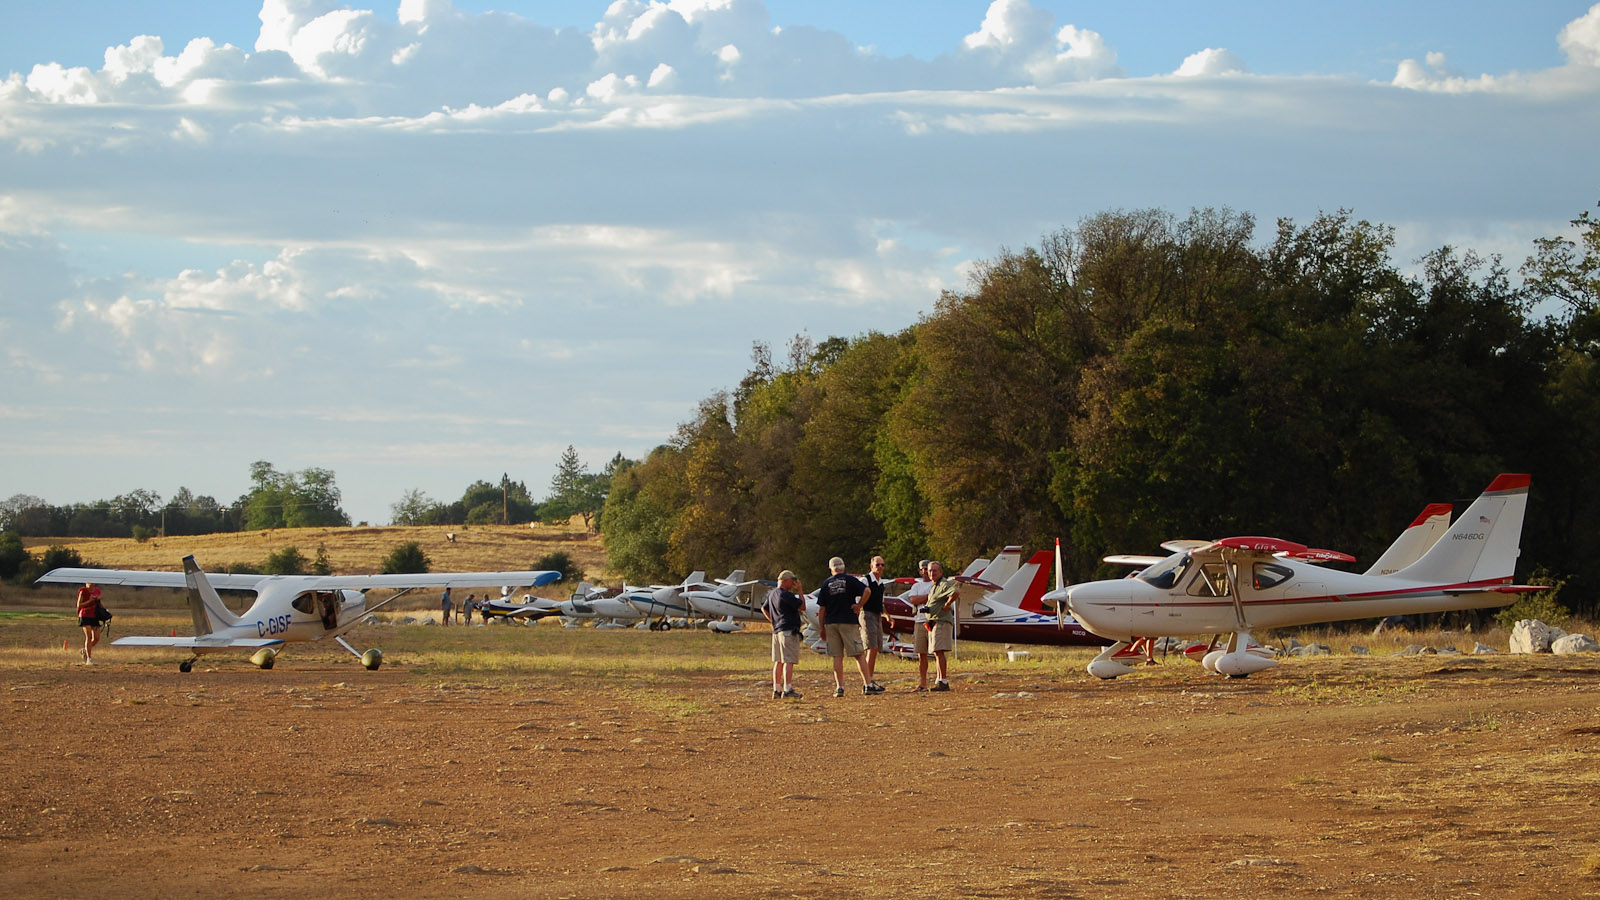 18 aircraft flew to Columbia, CA, for the 8th Annual GlaStar & Sportsman Fly-In, including 12 GlaStars, 4 Sportsmans, a Zodiac and RV-9A. Photo: Dave Ammenti.